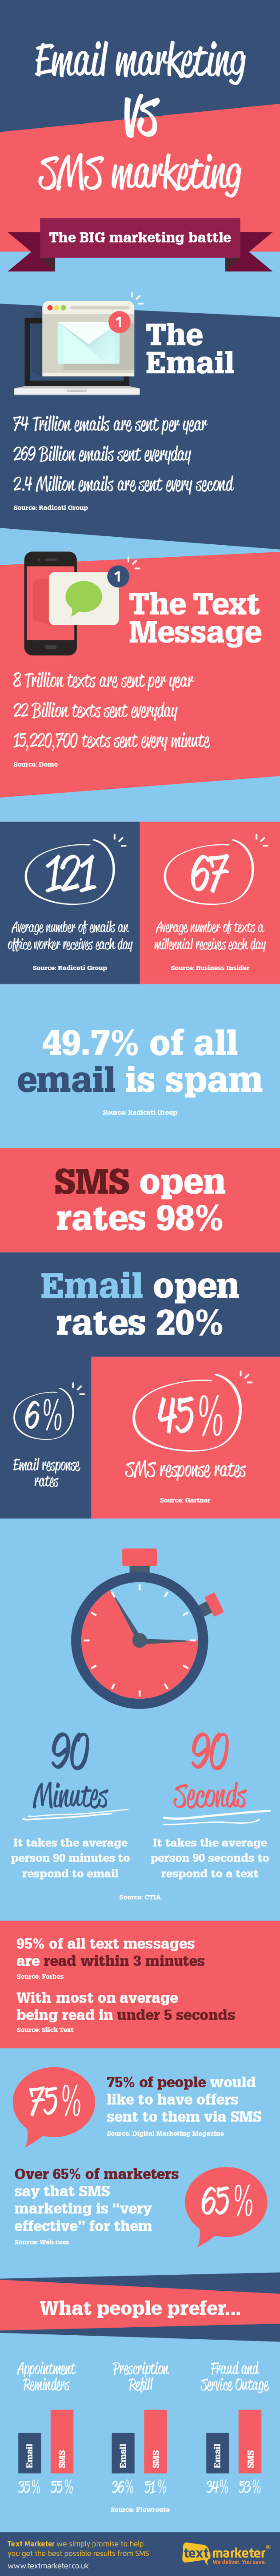 Email vs SMS: Battle of the Heavyweights